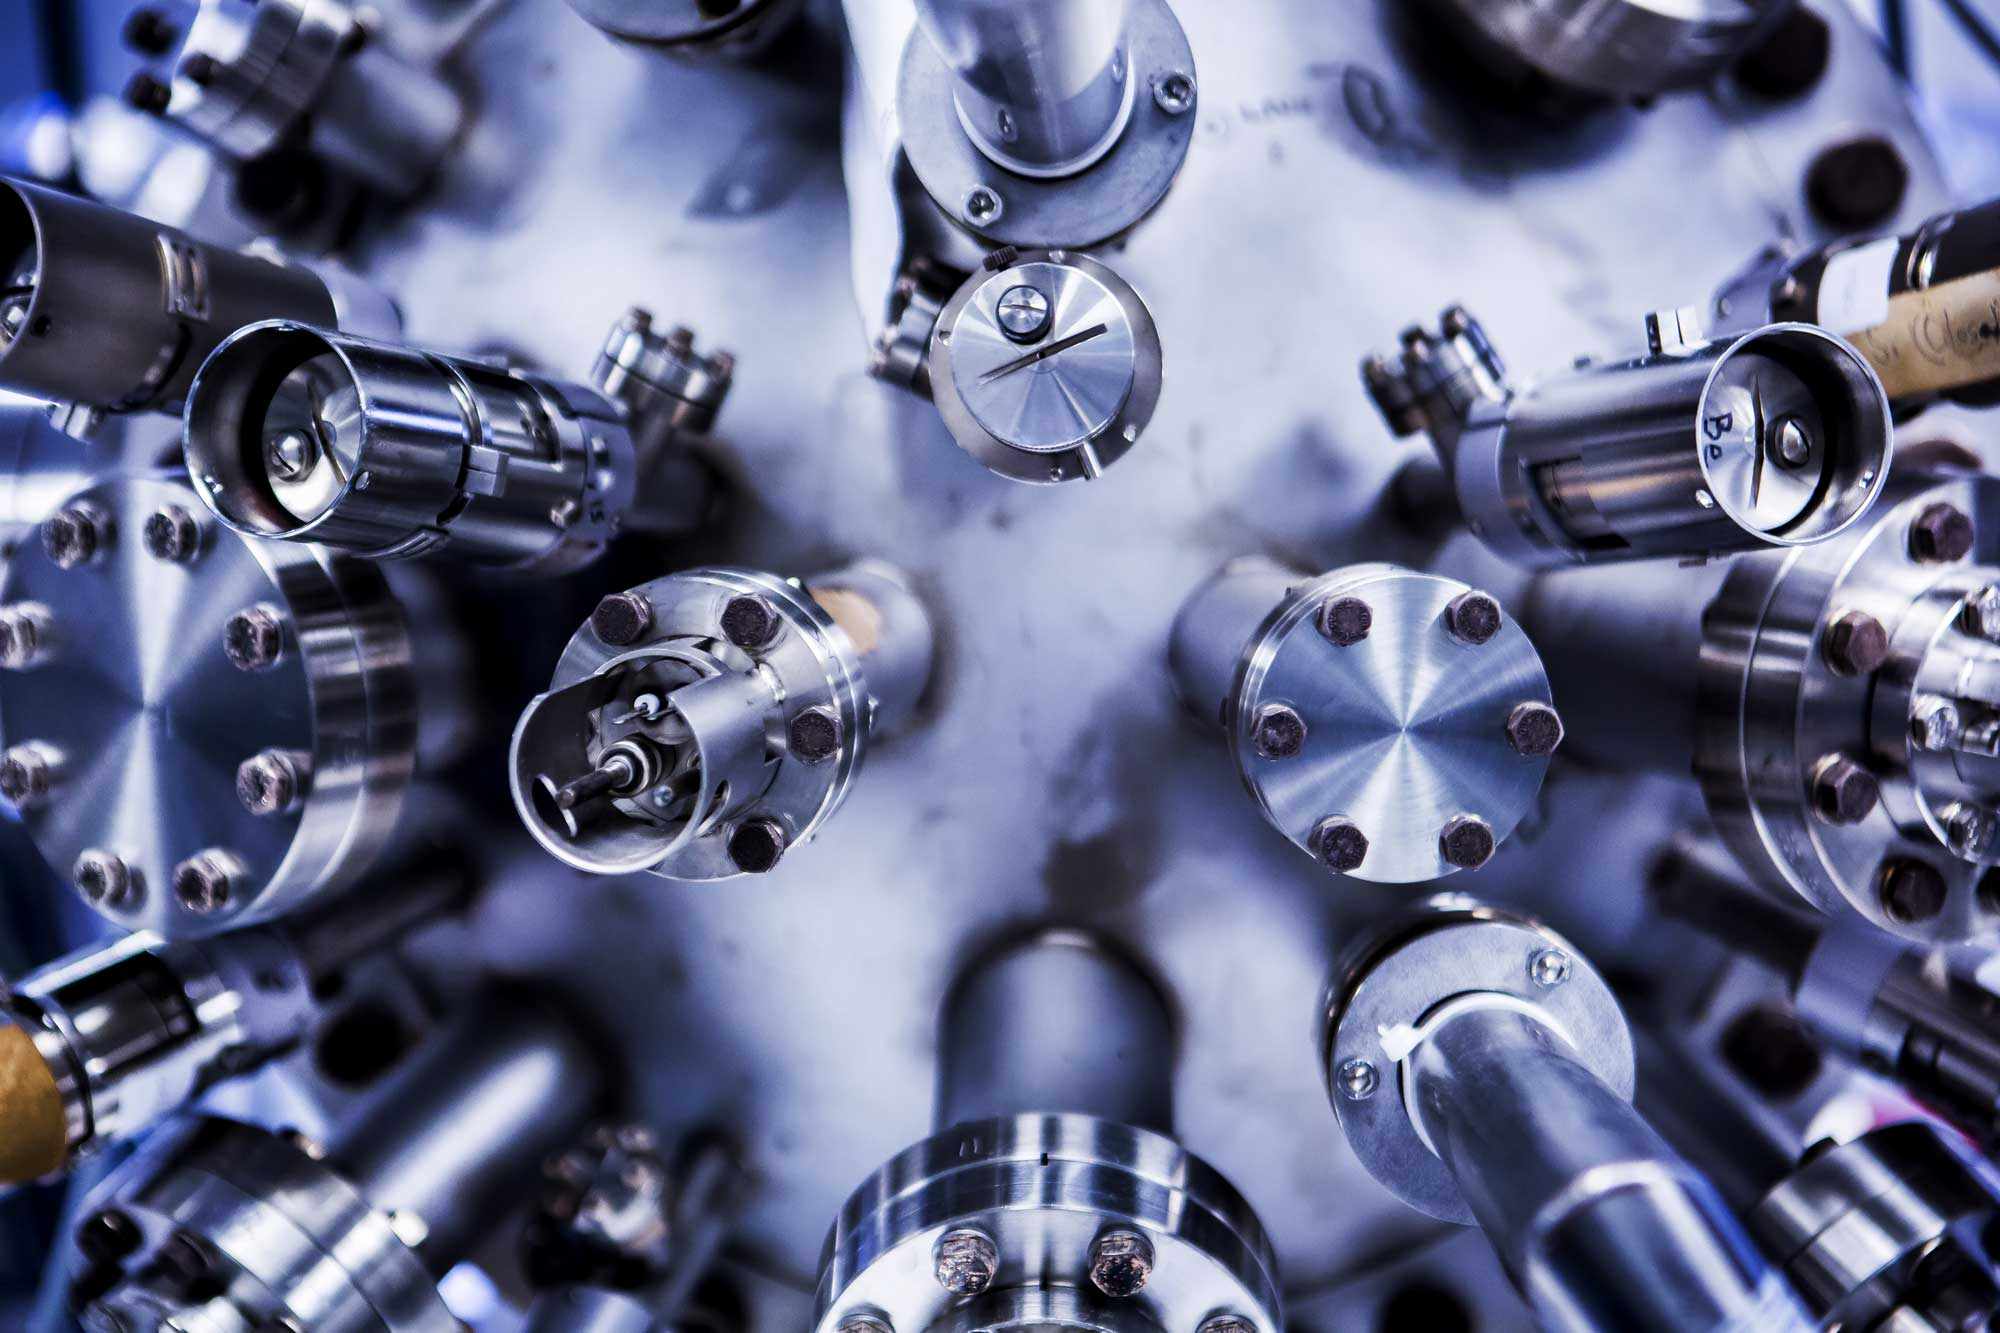 The main growth chamber of the molecular epitaxy beam apparatus used to make the nanoparticle-infused gallium nitride semiconductors. The semiconductors could boost LED efficiency by up to 50 percent, and even lead to invisibility cloaking devices. Image credit: Joseph Xu, Michigan Engineering